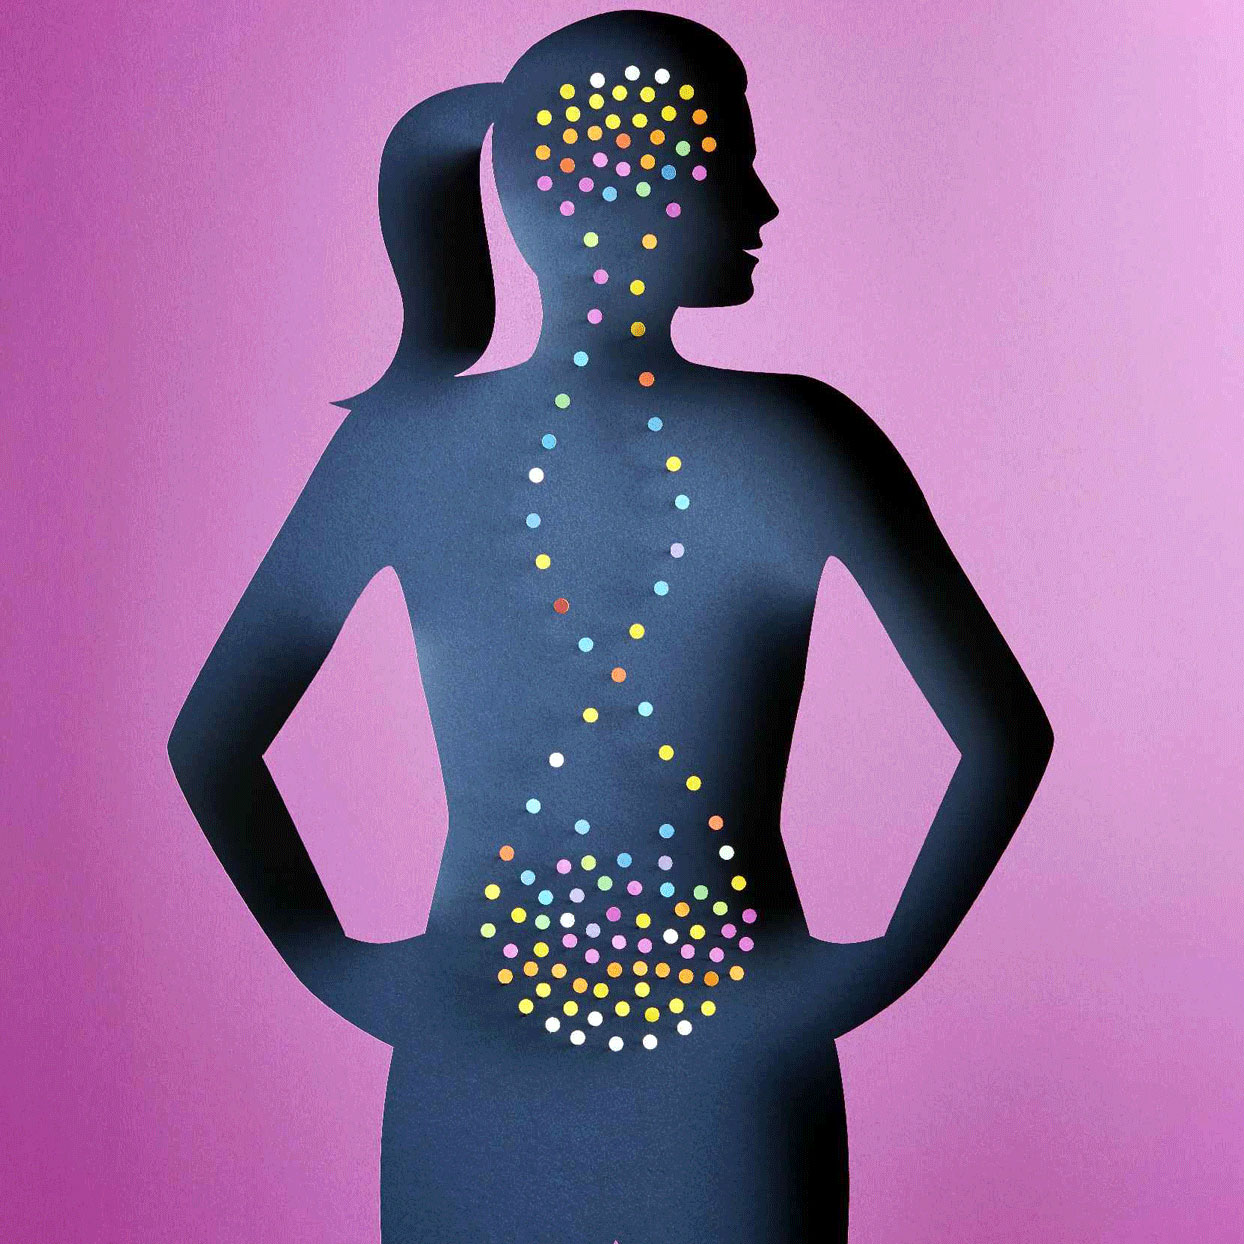 Illustration - silhouette of a woman with colored dots around her gut and moving up to her brain